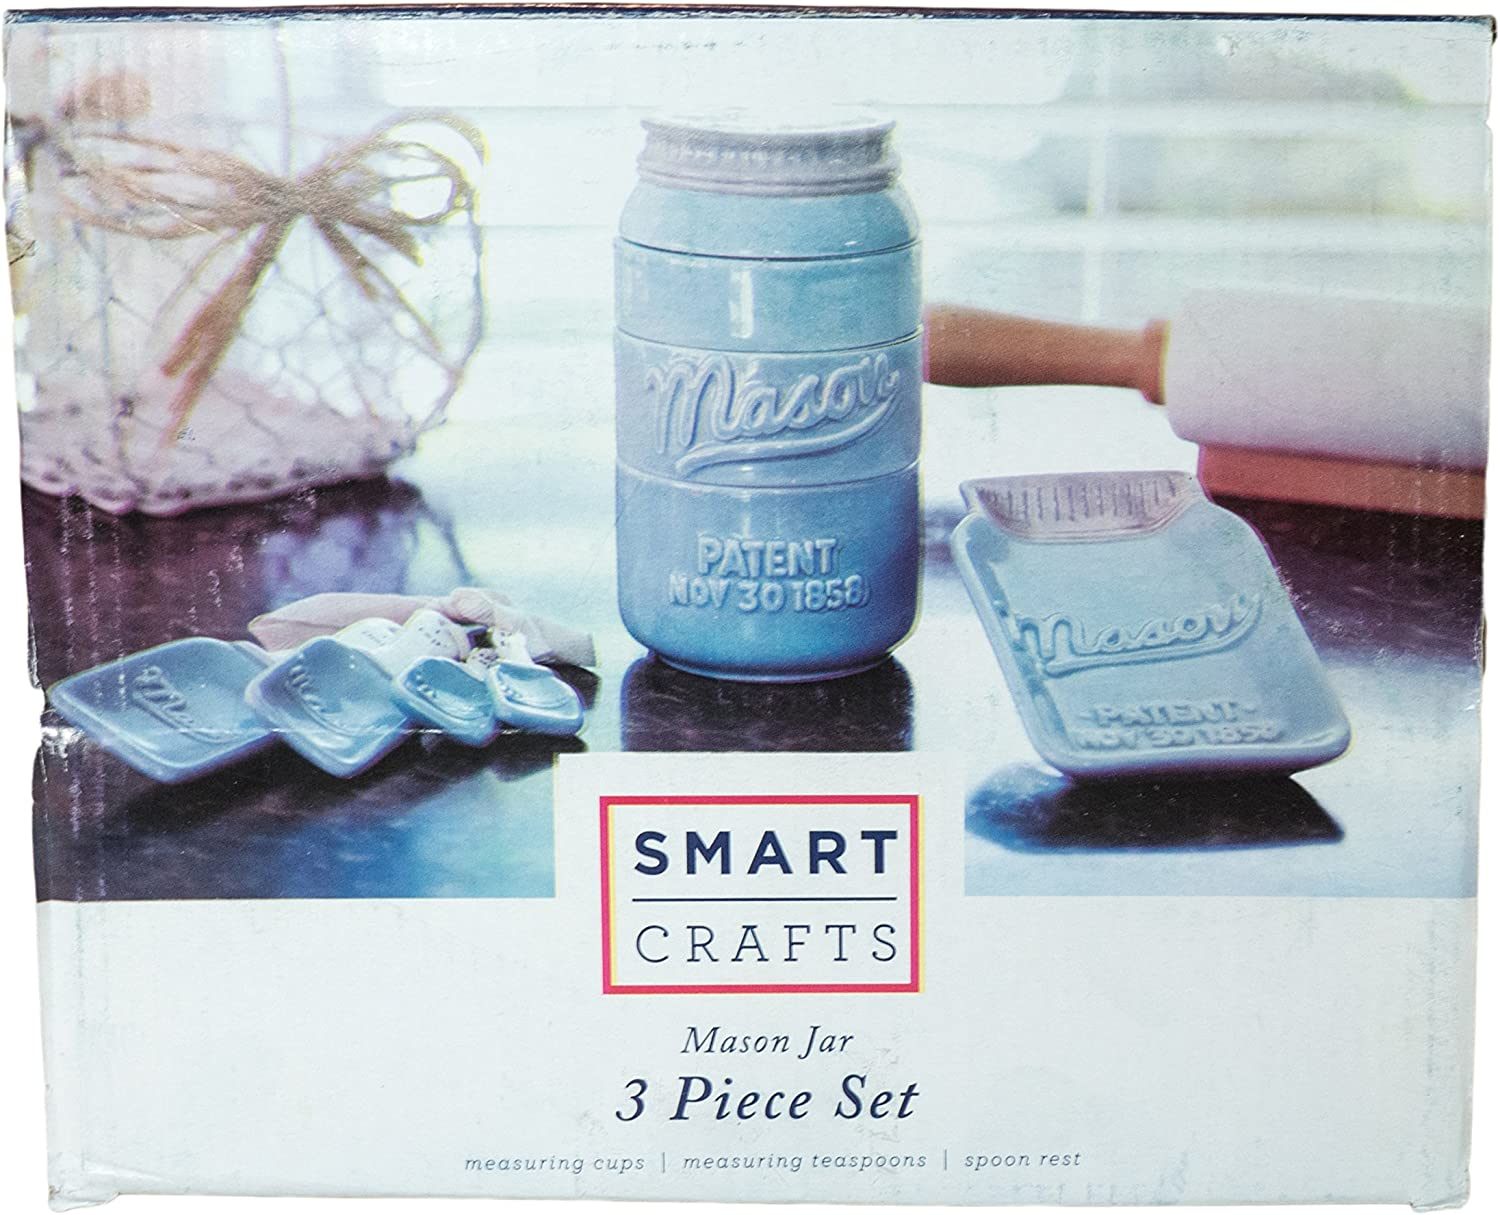 NEW This Set Includes Stackable Measuring Cups Measuring Spoons and Spoon Rest! Blue Mason Jar Ceramic Kitchenware 3 Piece Set